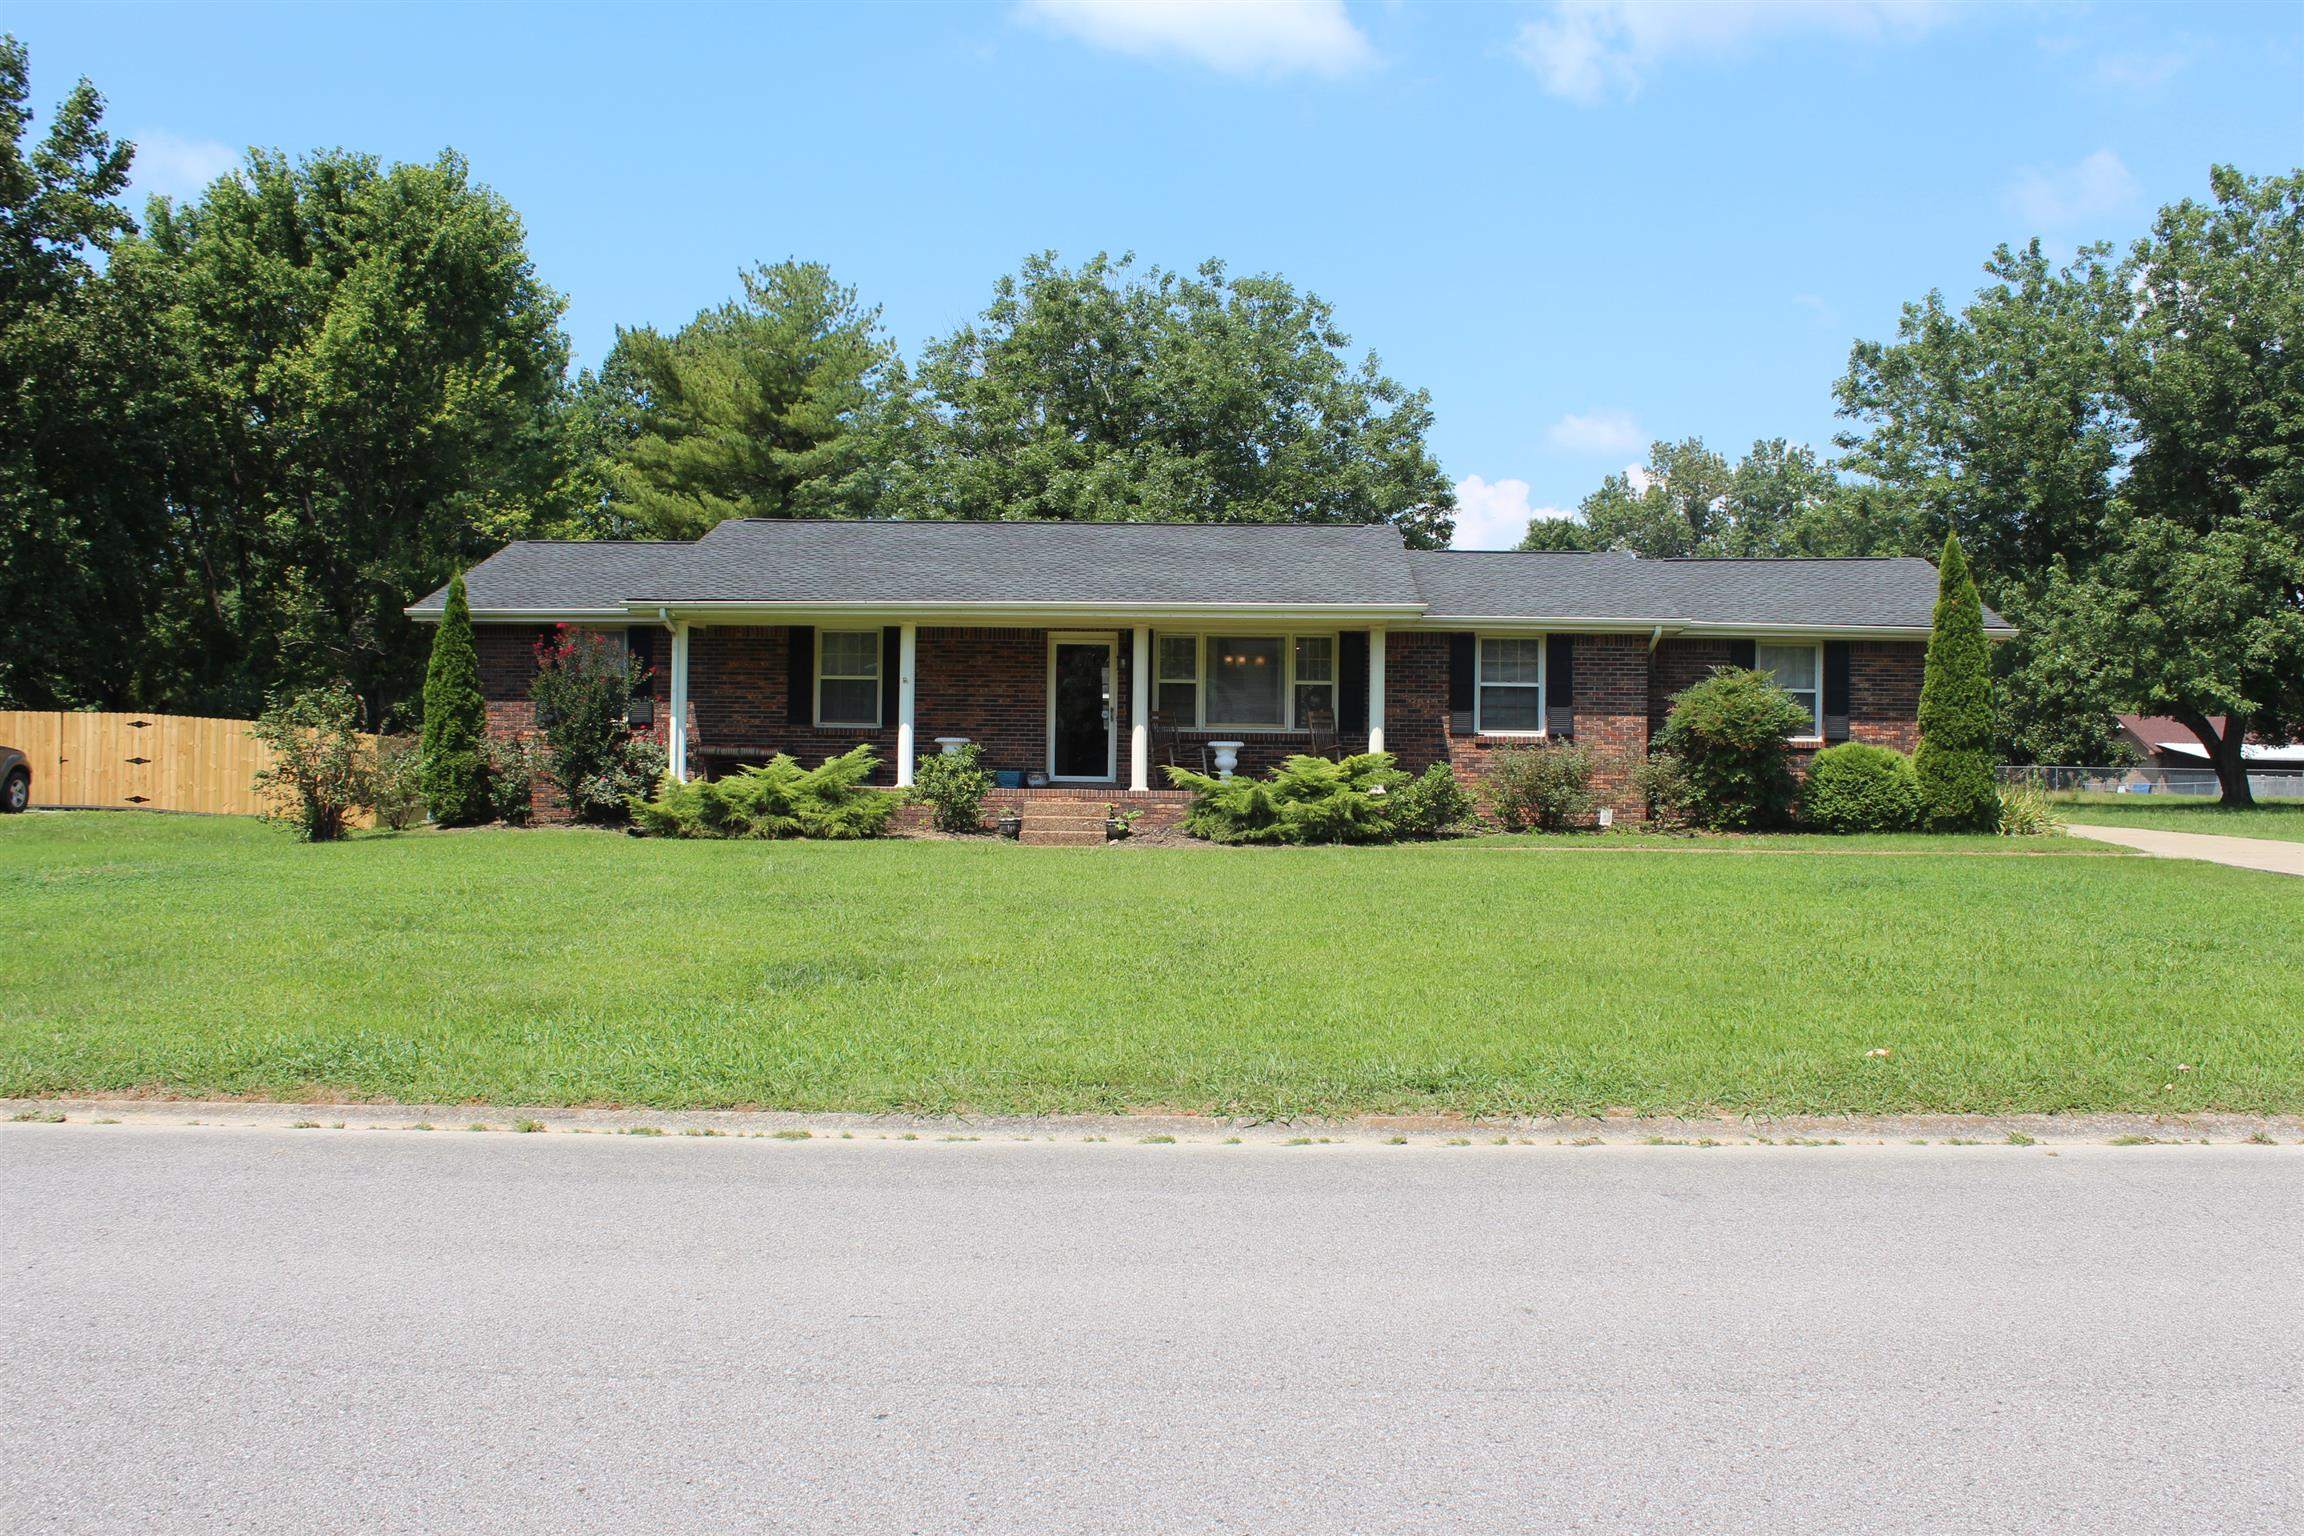 1232 Timberwood Dr, Gallatin, Tennessee